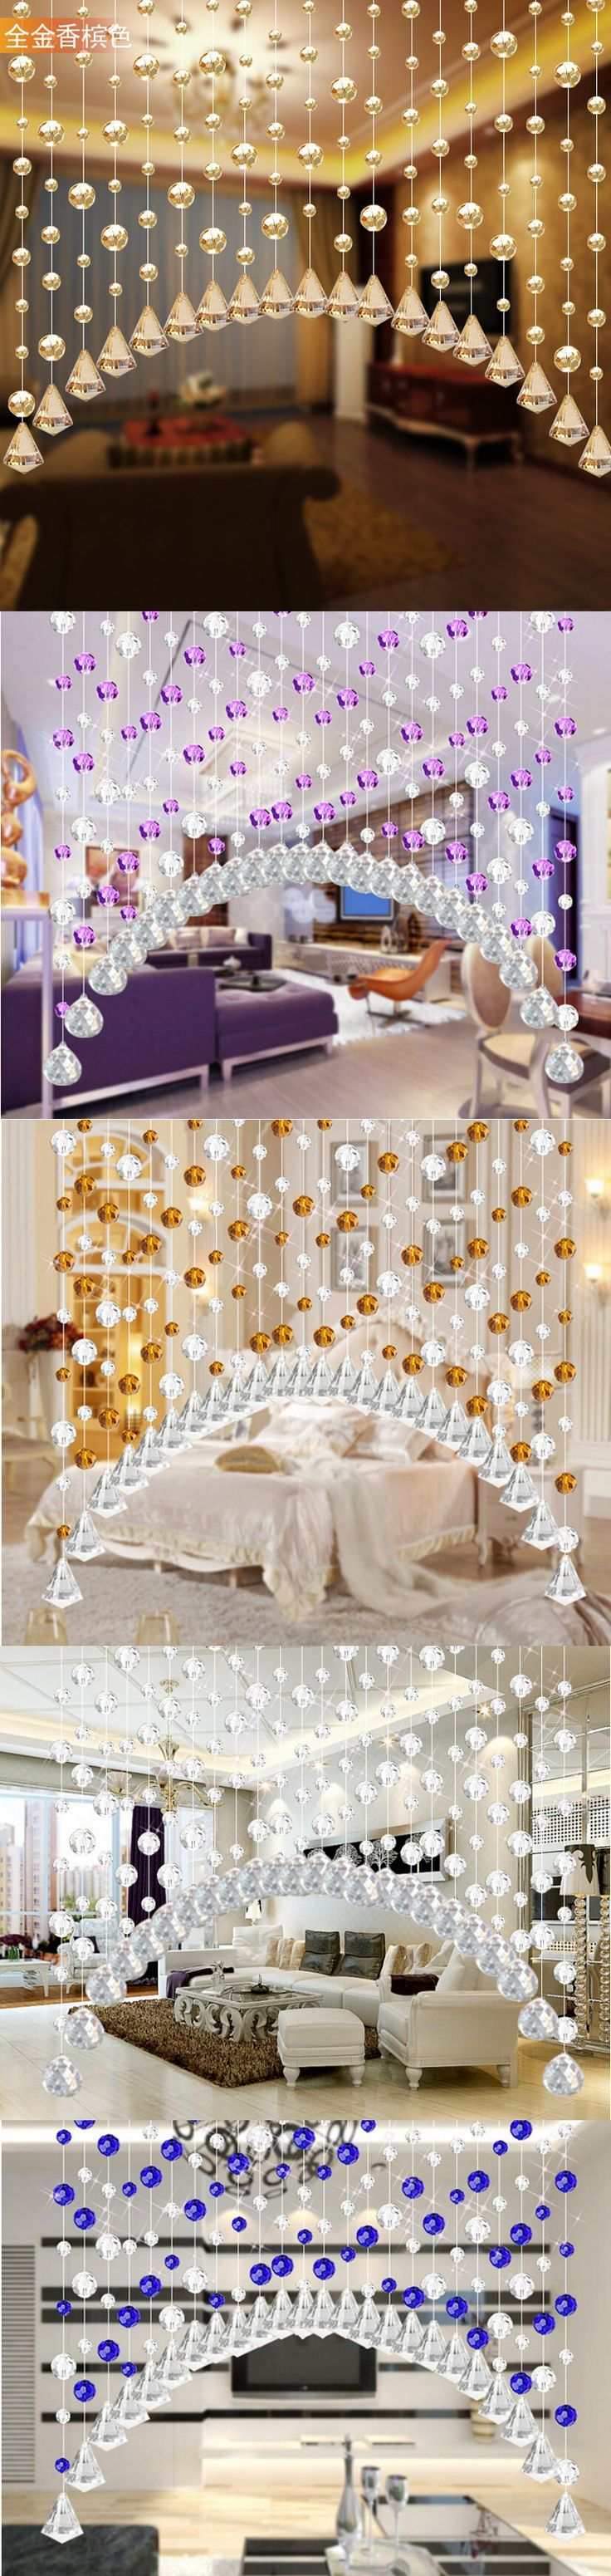 Ha hanging bead curtains for doorways - The 25 Best Ideas About Bead Curtains For Doors On Pinterest Bead Curtains Hanging Door Beads And Beaded Door Curtains